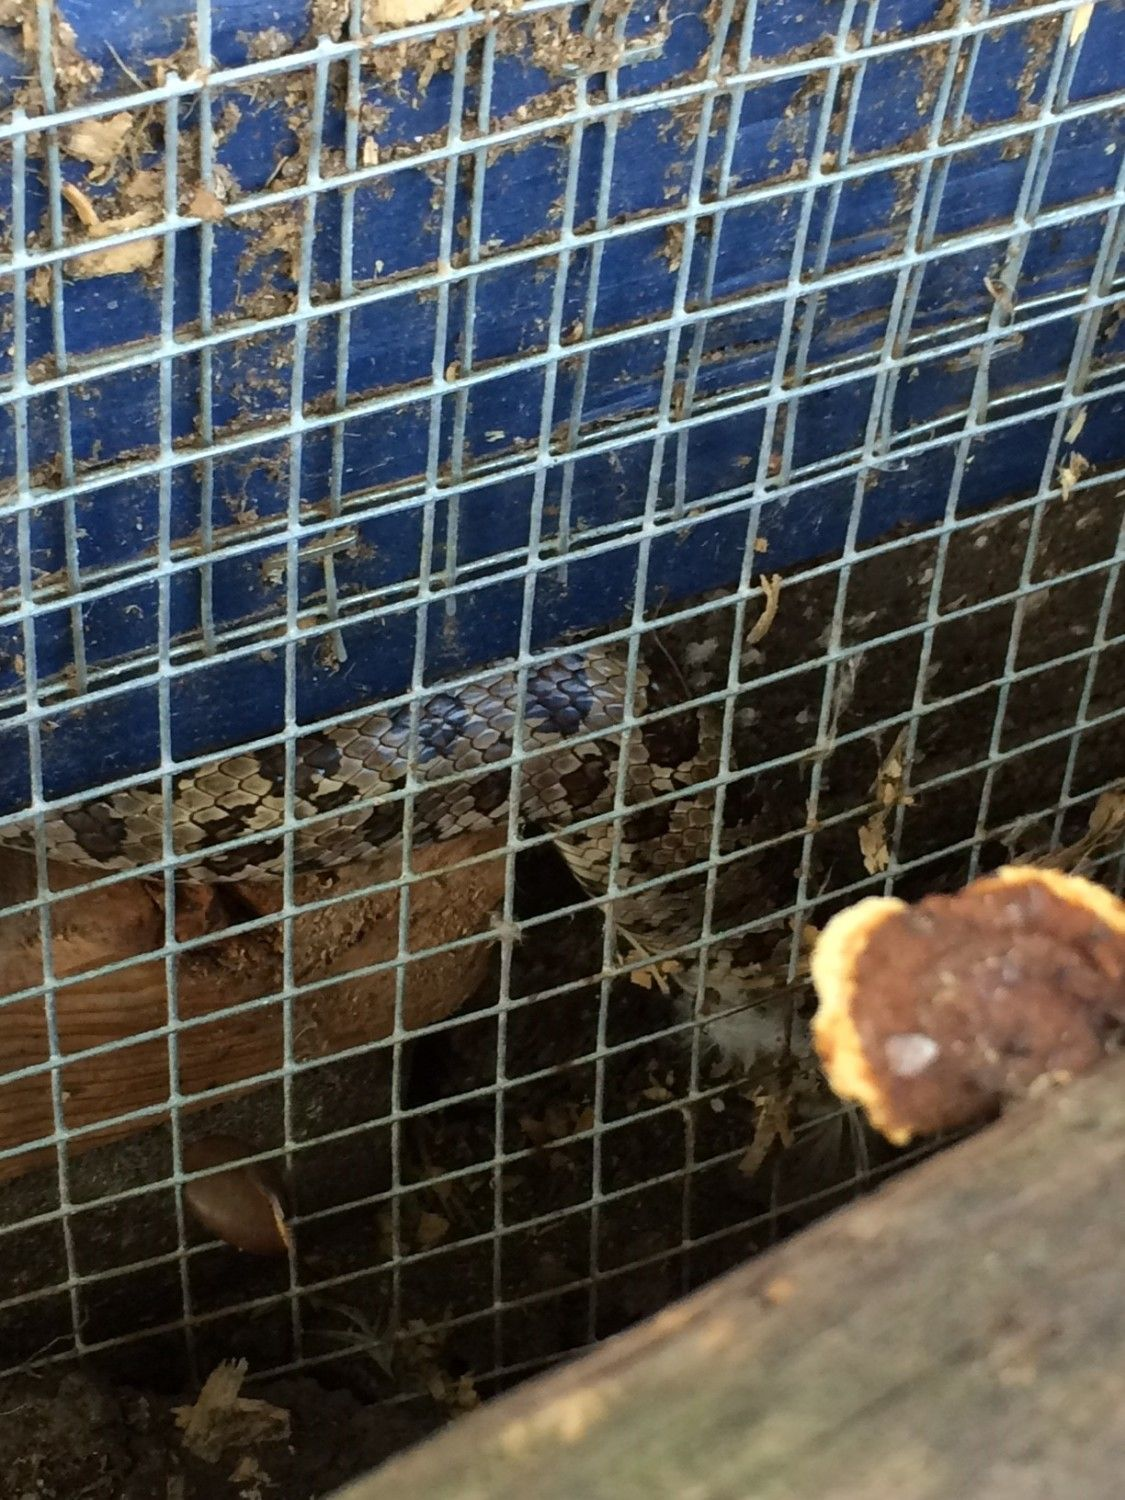 unwanted guests in the coop